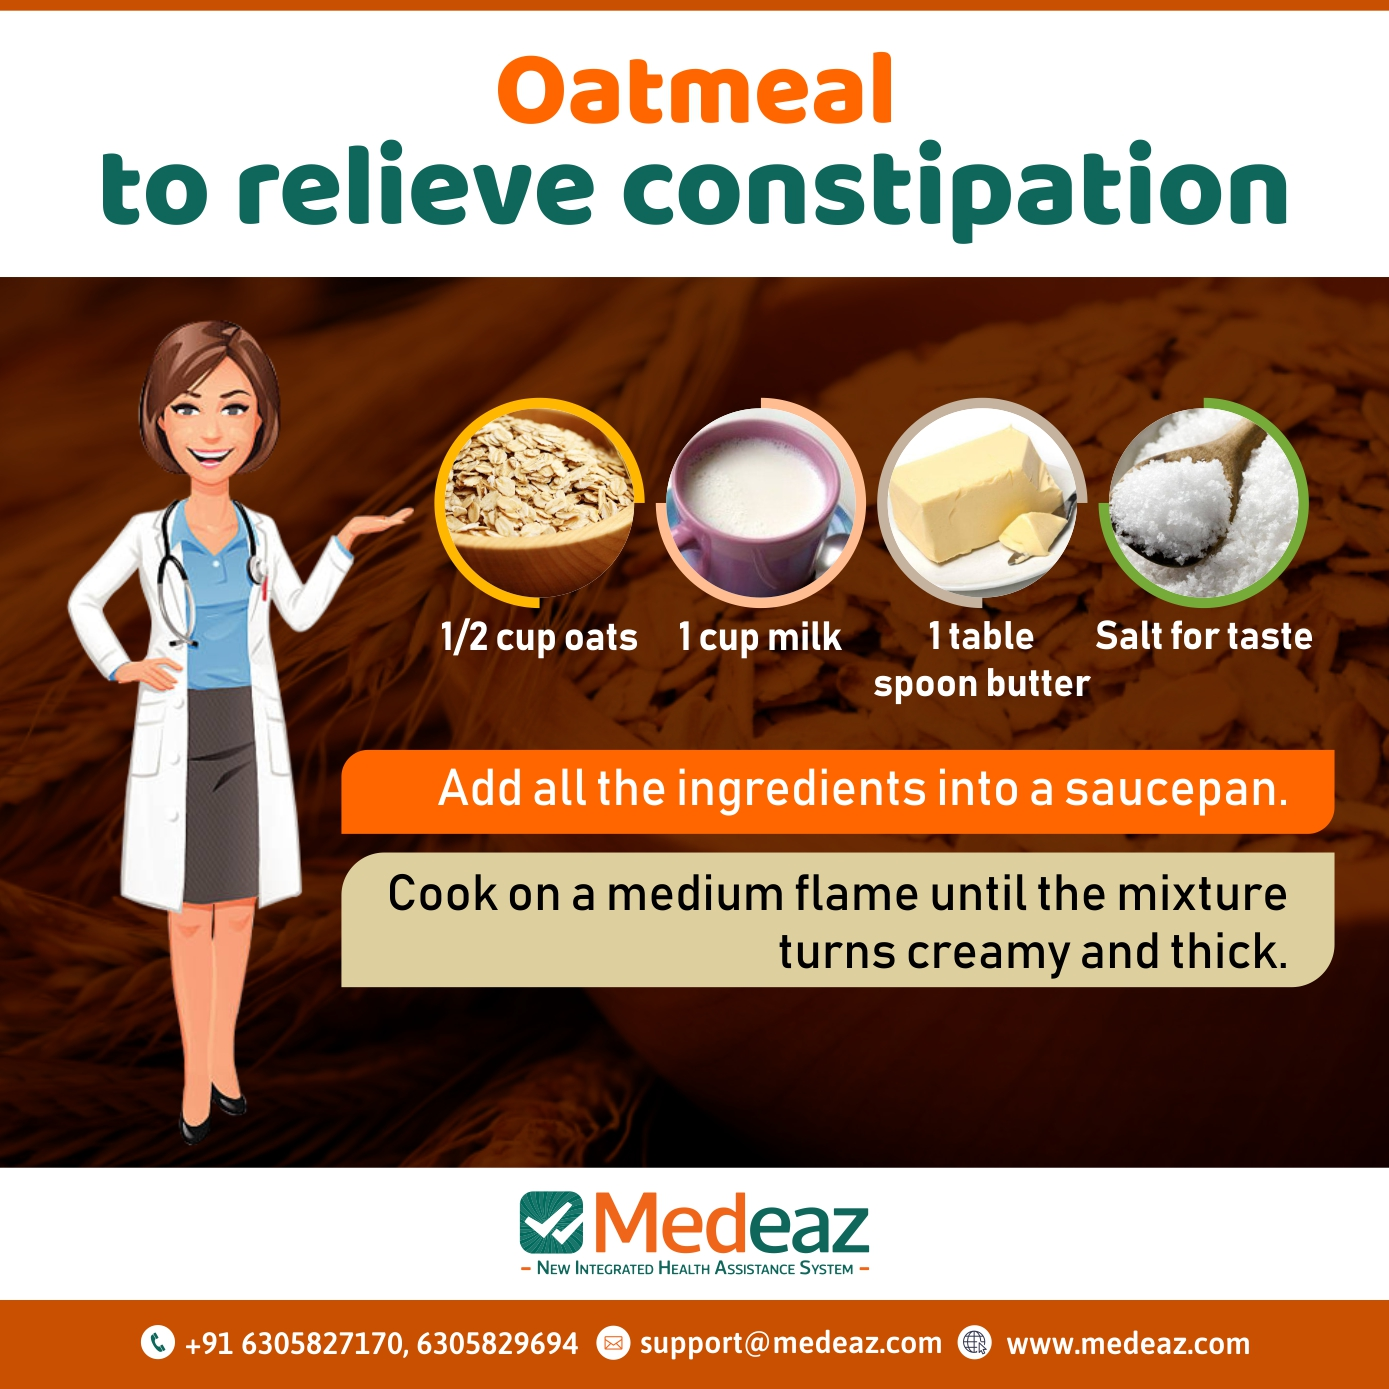 Oatmeal to relieve constipation.